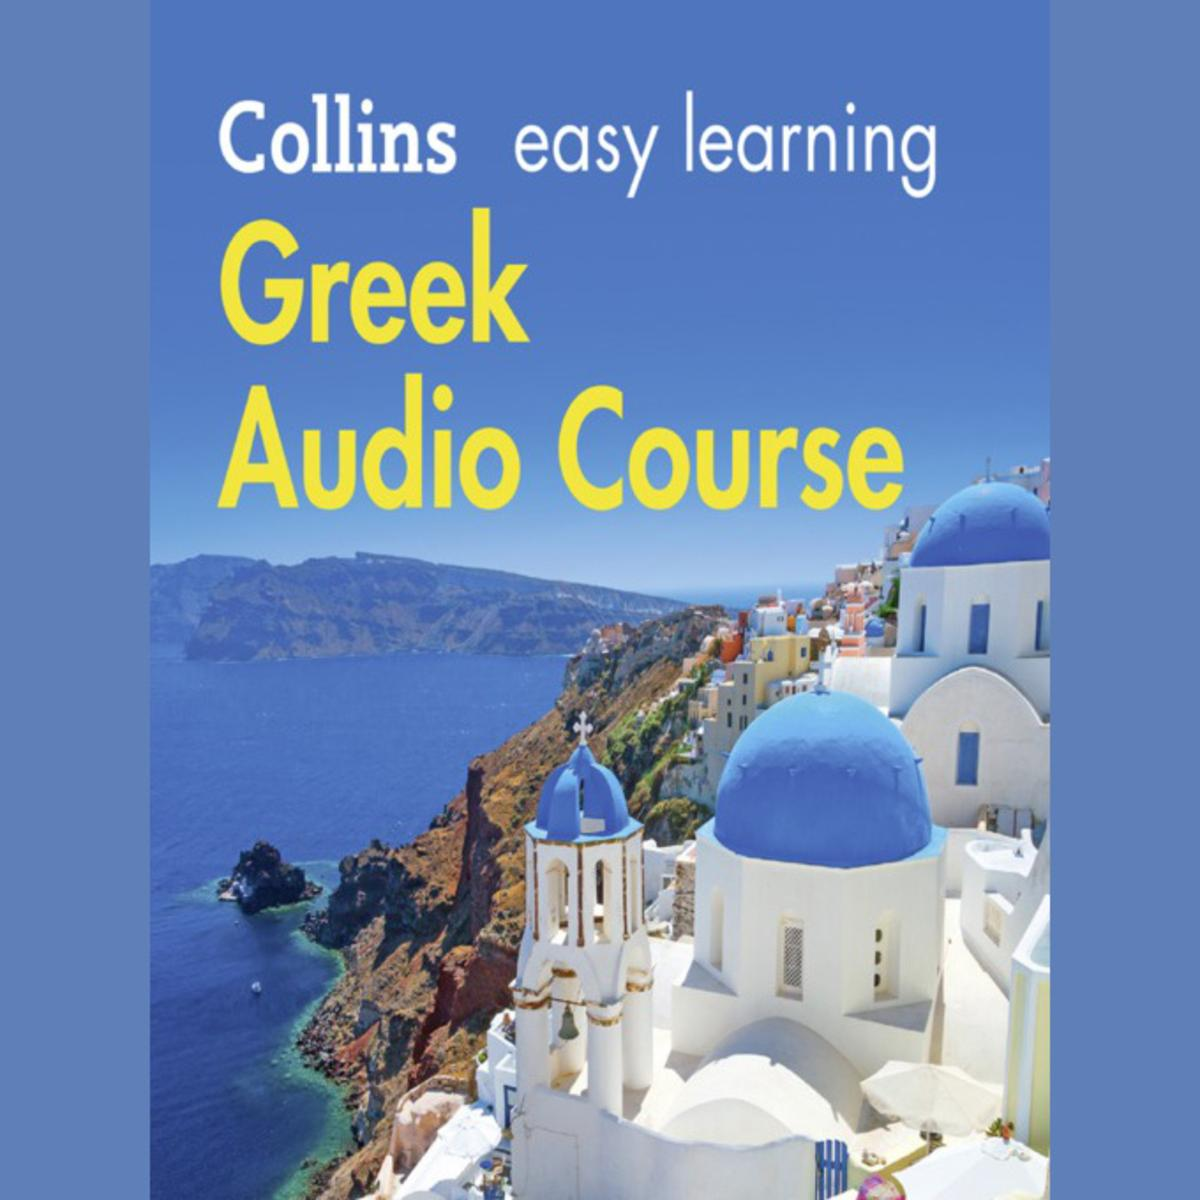 Easy Learning Greek Audio Course: Language Learning the easy way with Collins (Collins Easy Learning Audio Course) - Audiobook